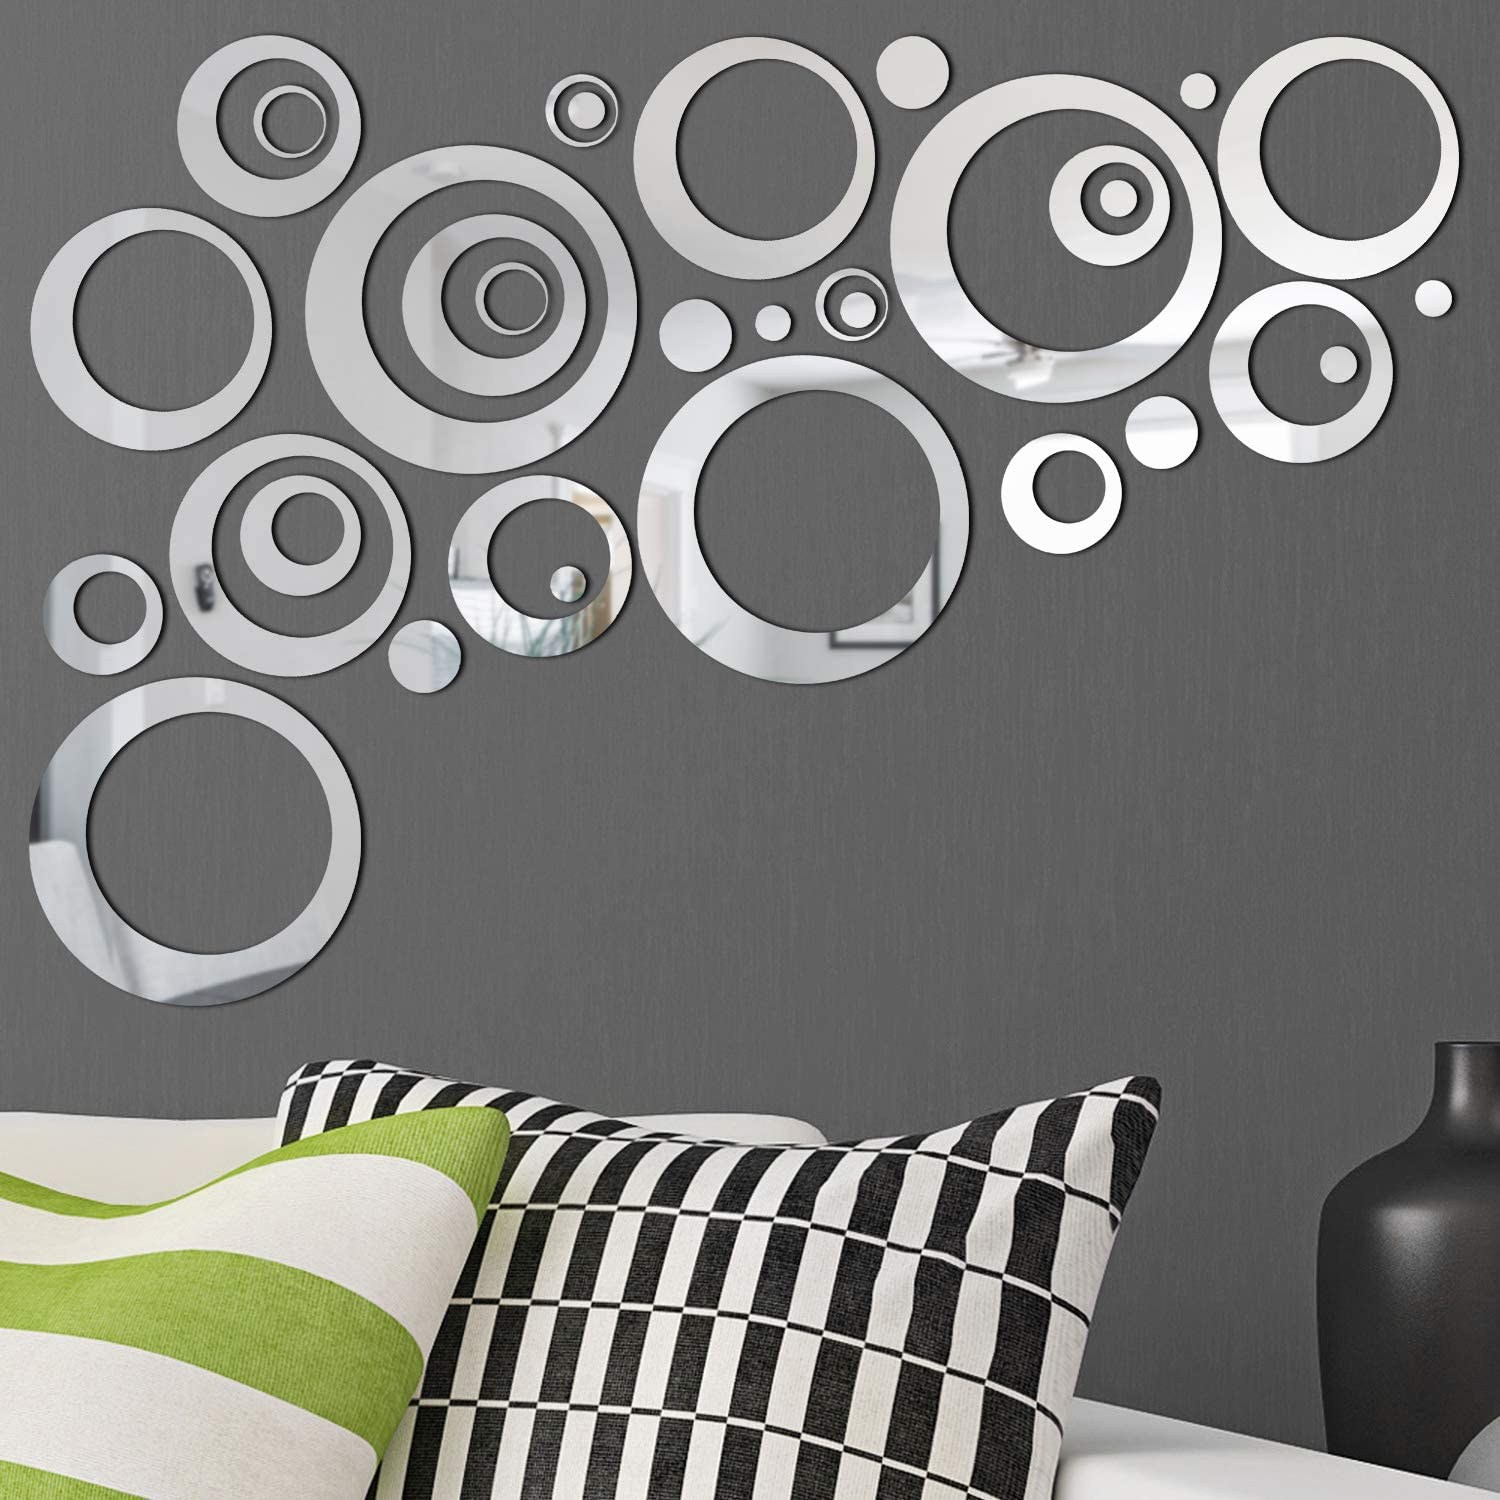 32 Pieces Removable Acrylic Mirror Setting Wall Sticker Decal for Home Living Room Bedroom Decor (Style 6, 32 Pieces)